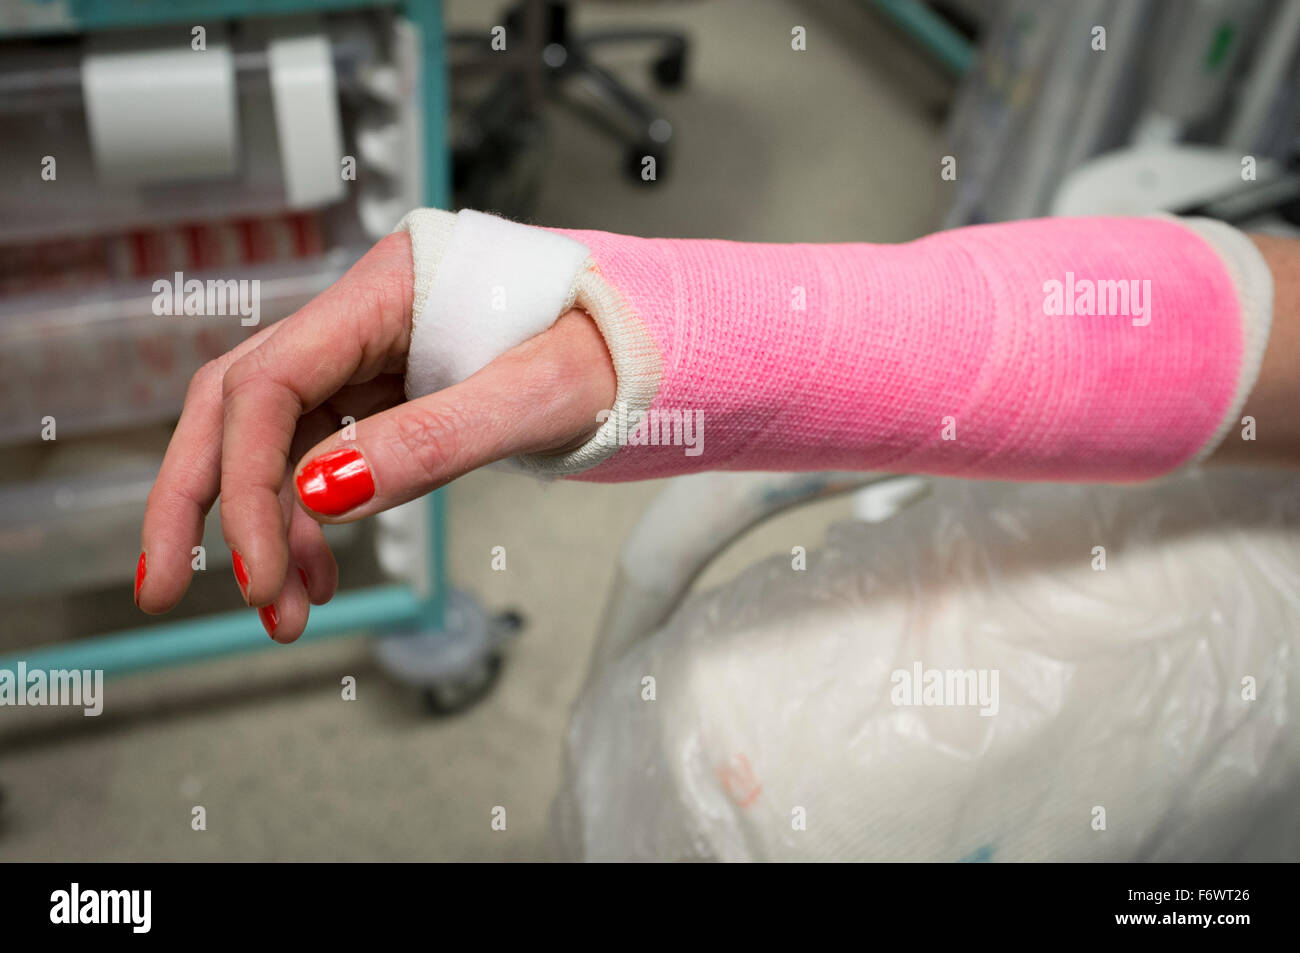 Freshly plastered lady's wrist in a pink plaster cast in a hospital accident and emergency department. - Stock Image